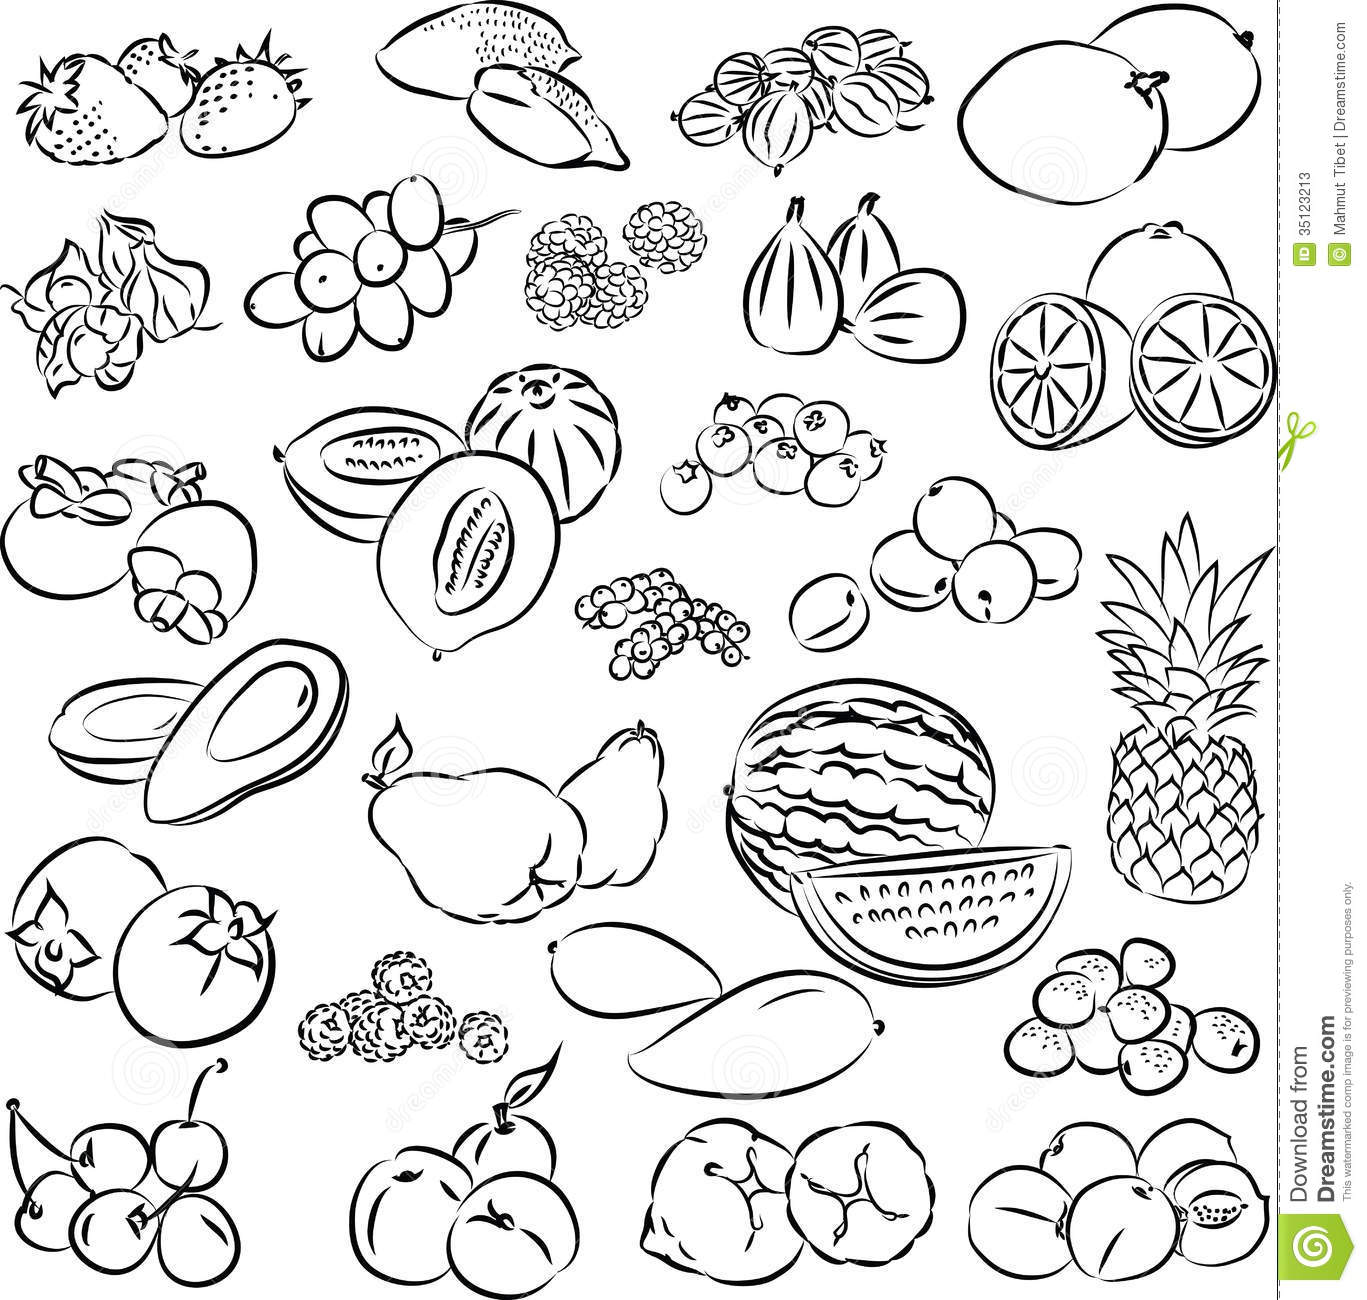 Line Art Fruits : Fruits stock vector illustration of orange pear melon